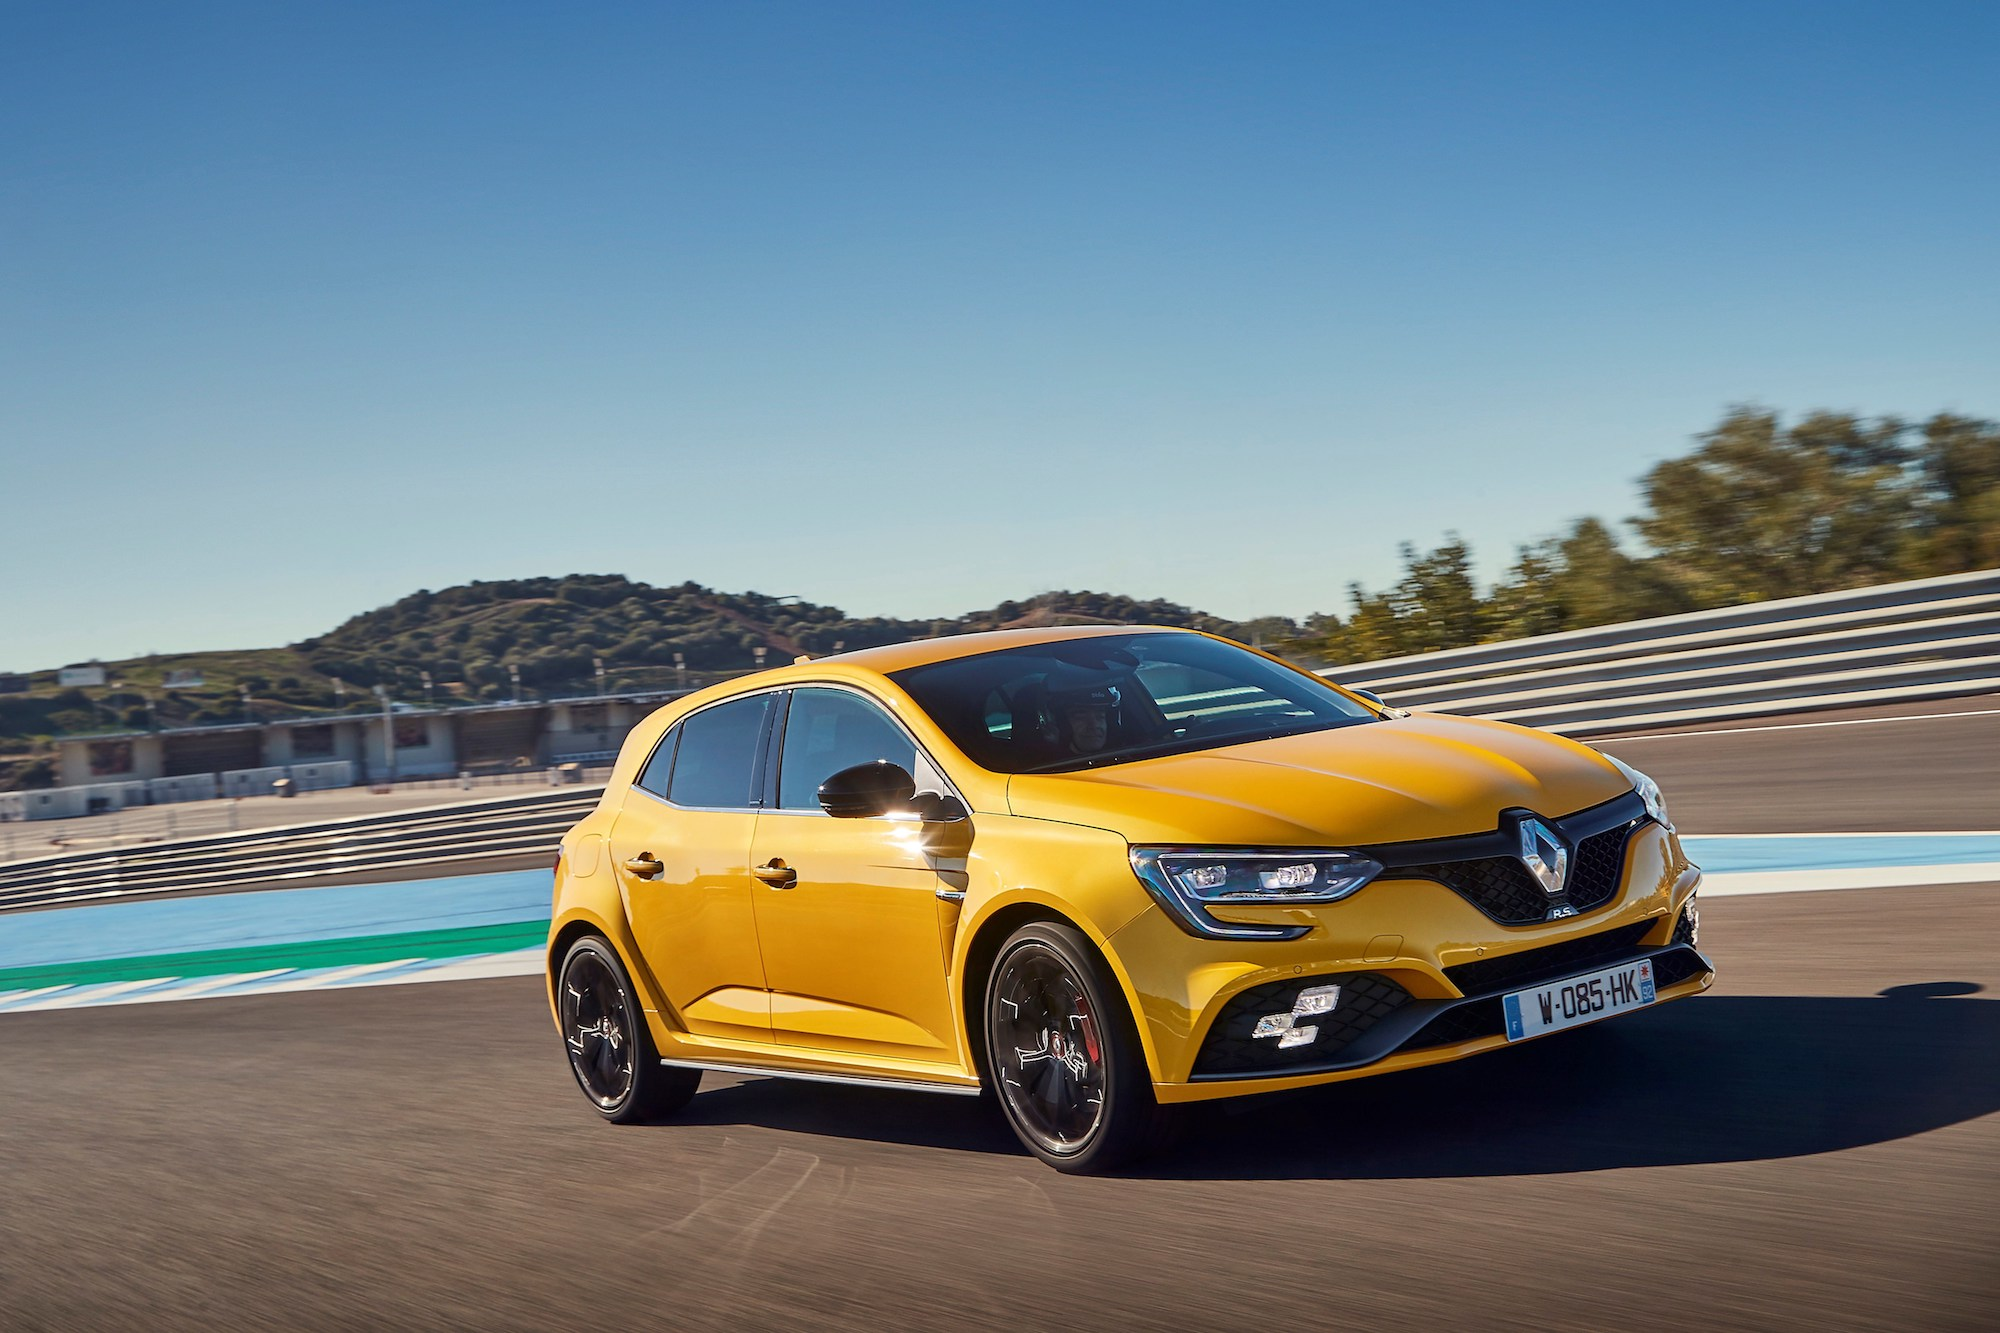 2018 - New Renault MEGANE R.S. Cup chassis tests drive in Spain